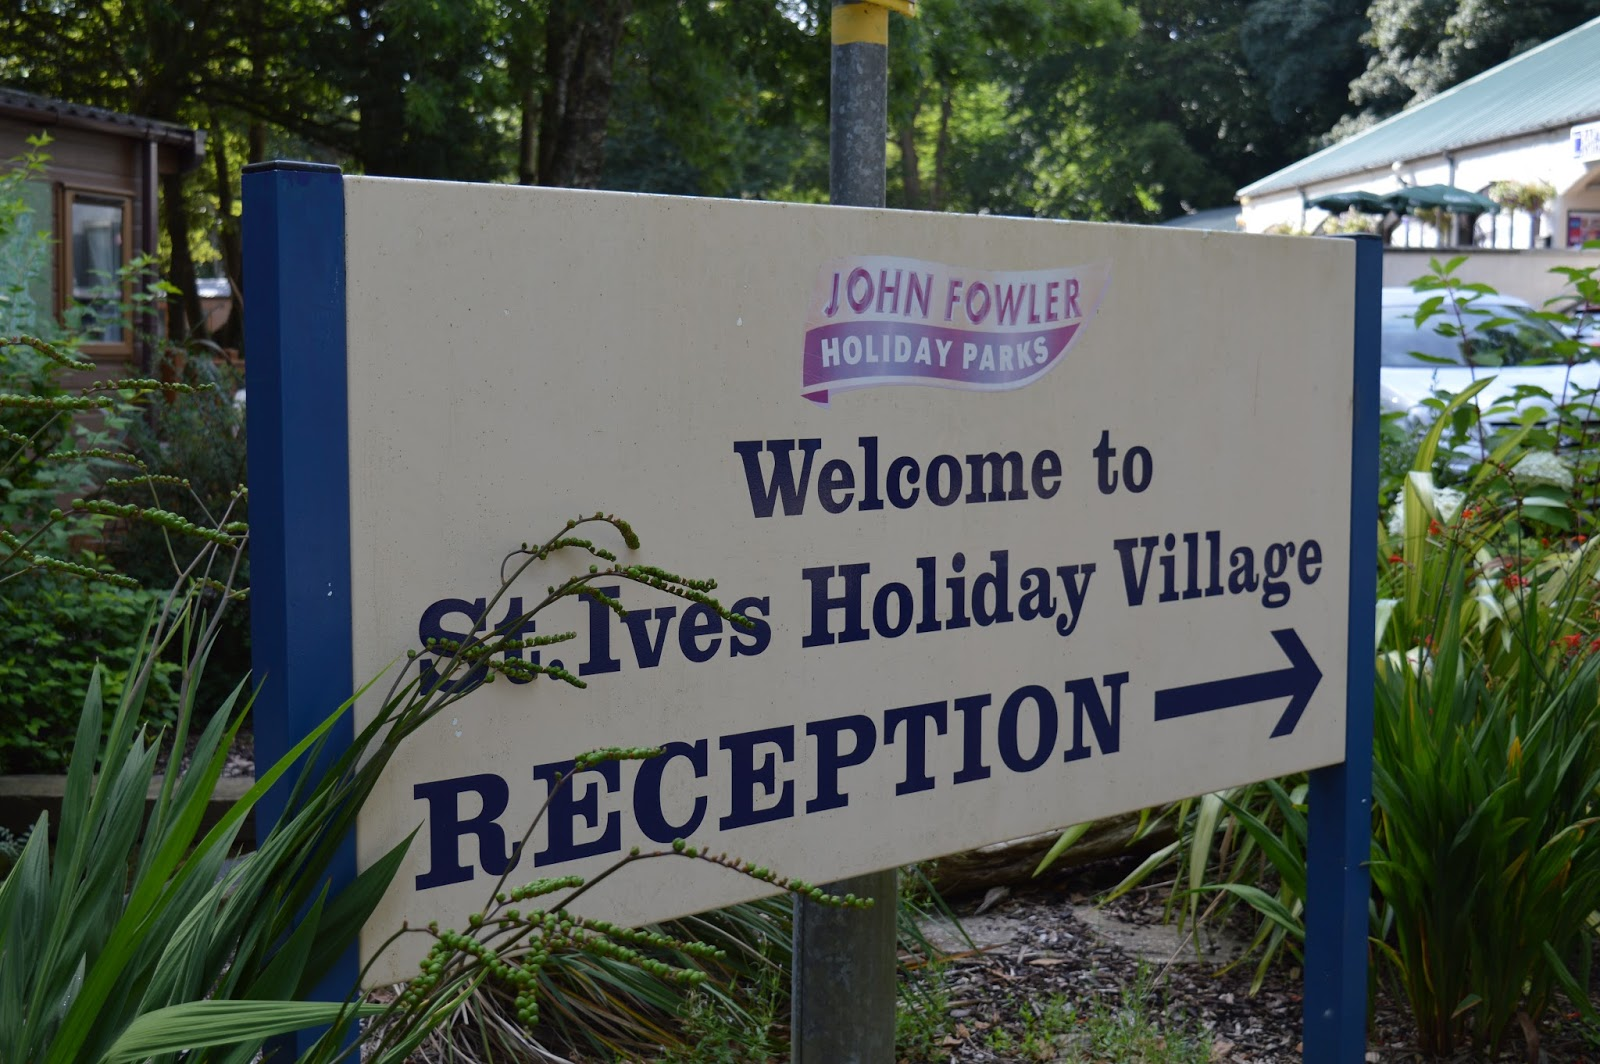 John Fowler Holidays - St Ives Holiday Park